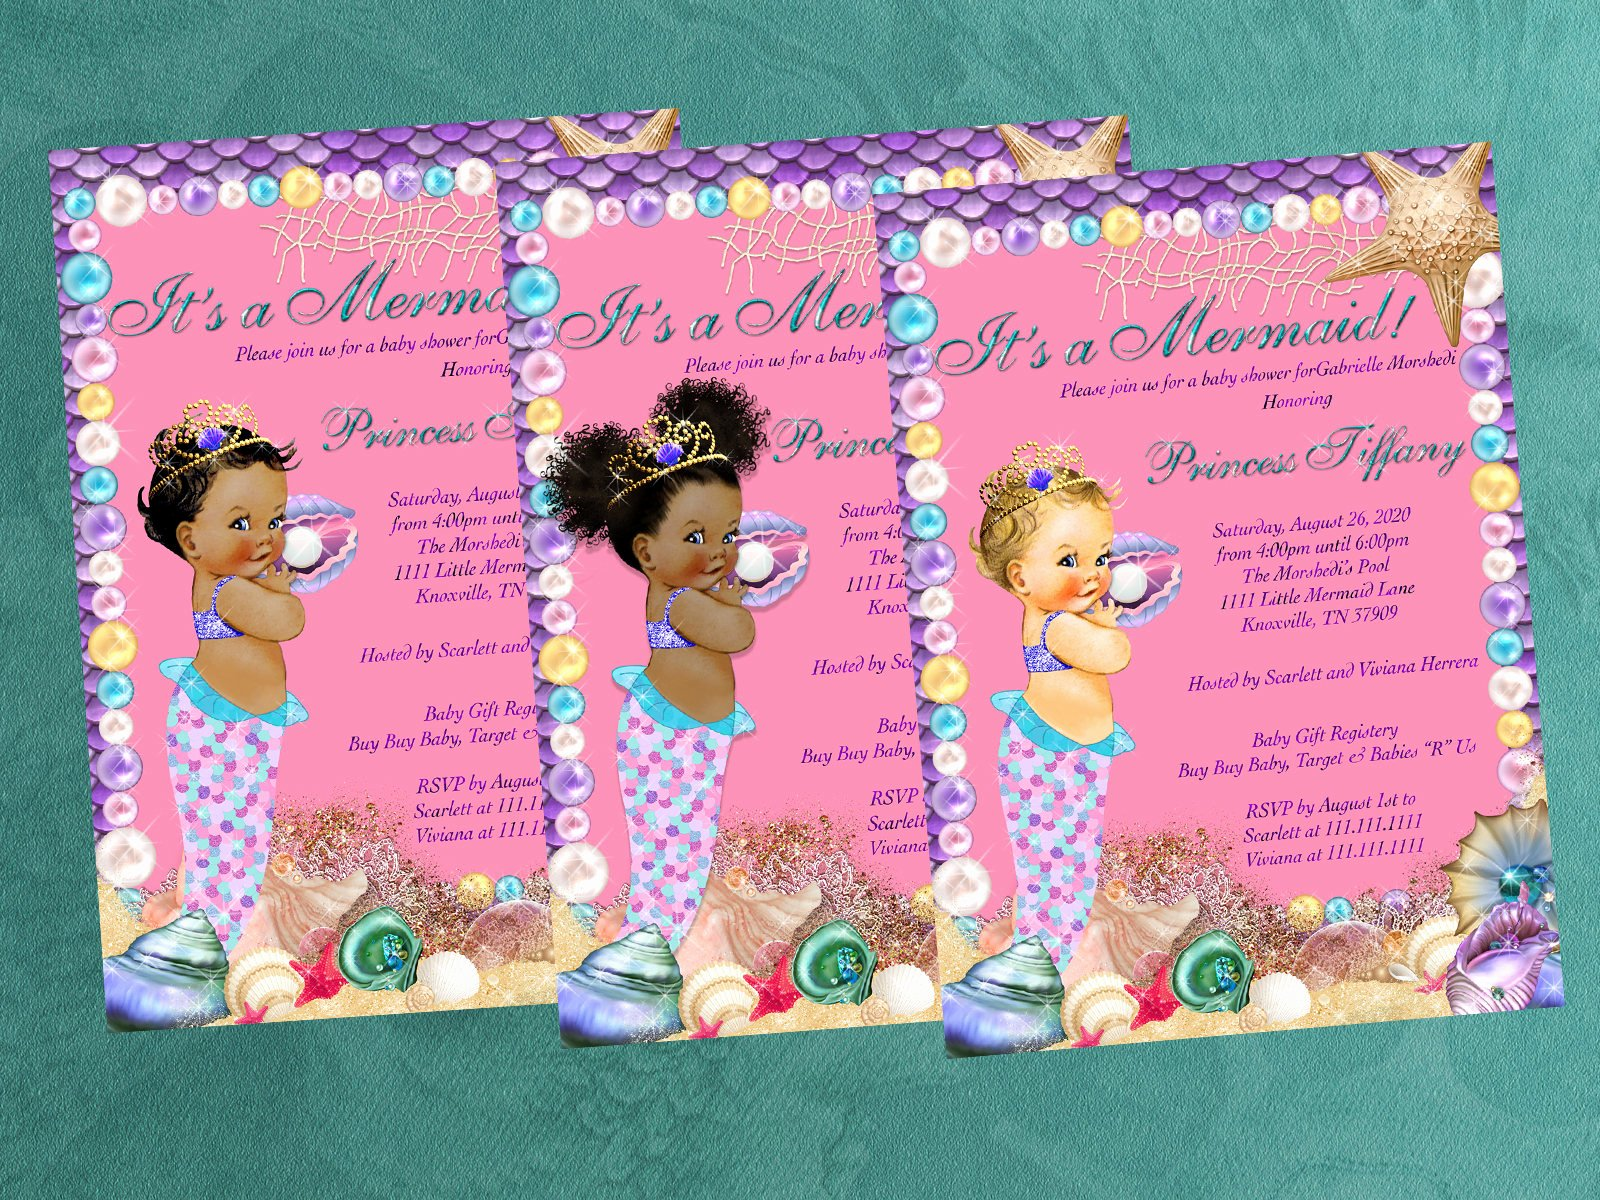 Mermaid Baby Shower Invitations Luxury Baby Shower Invitation Mermaid Baby Shower Mermaid